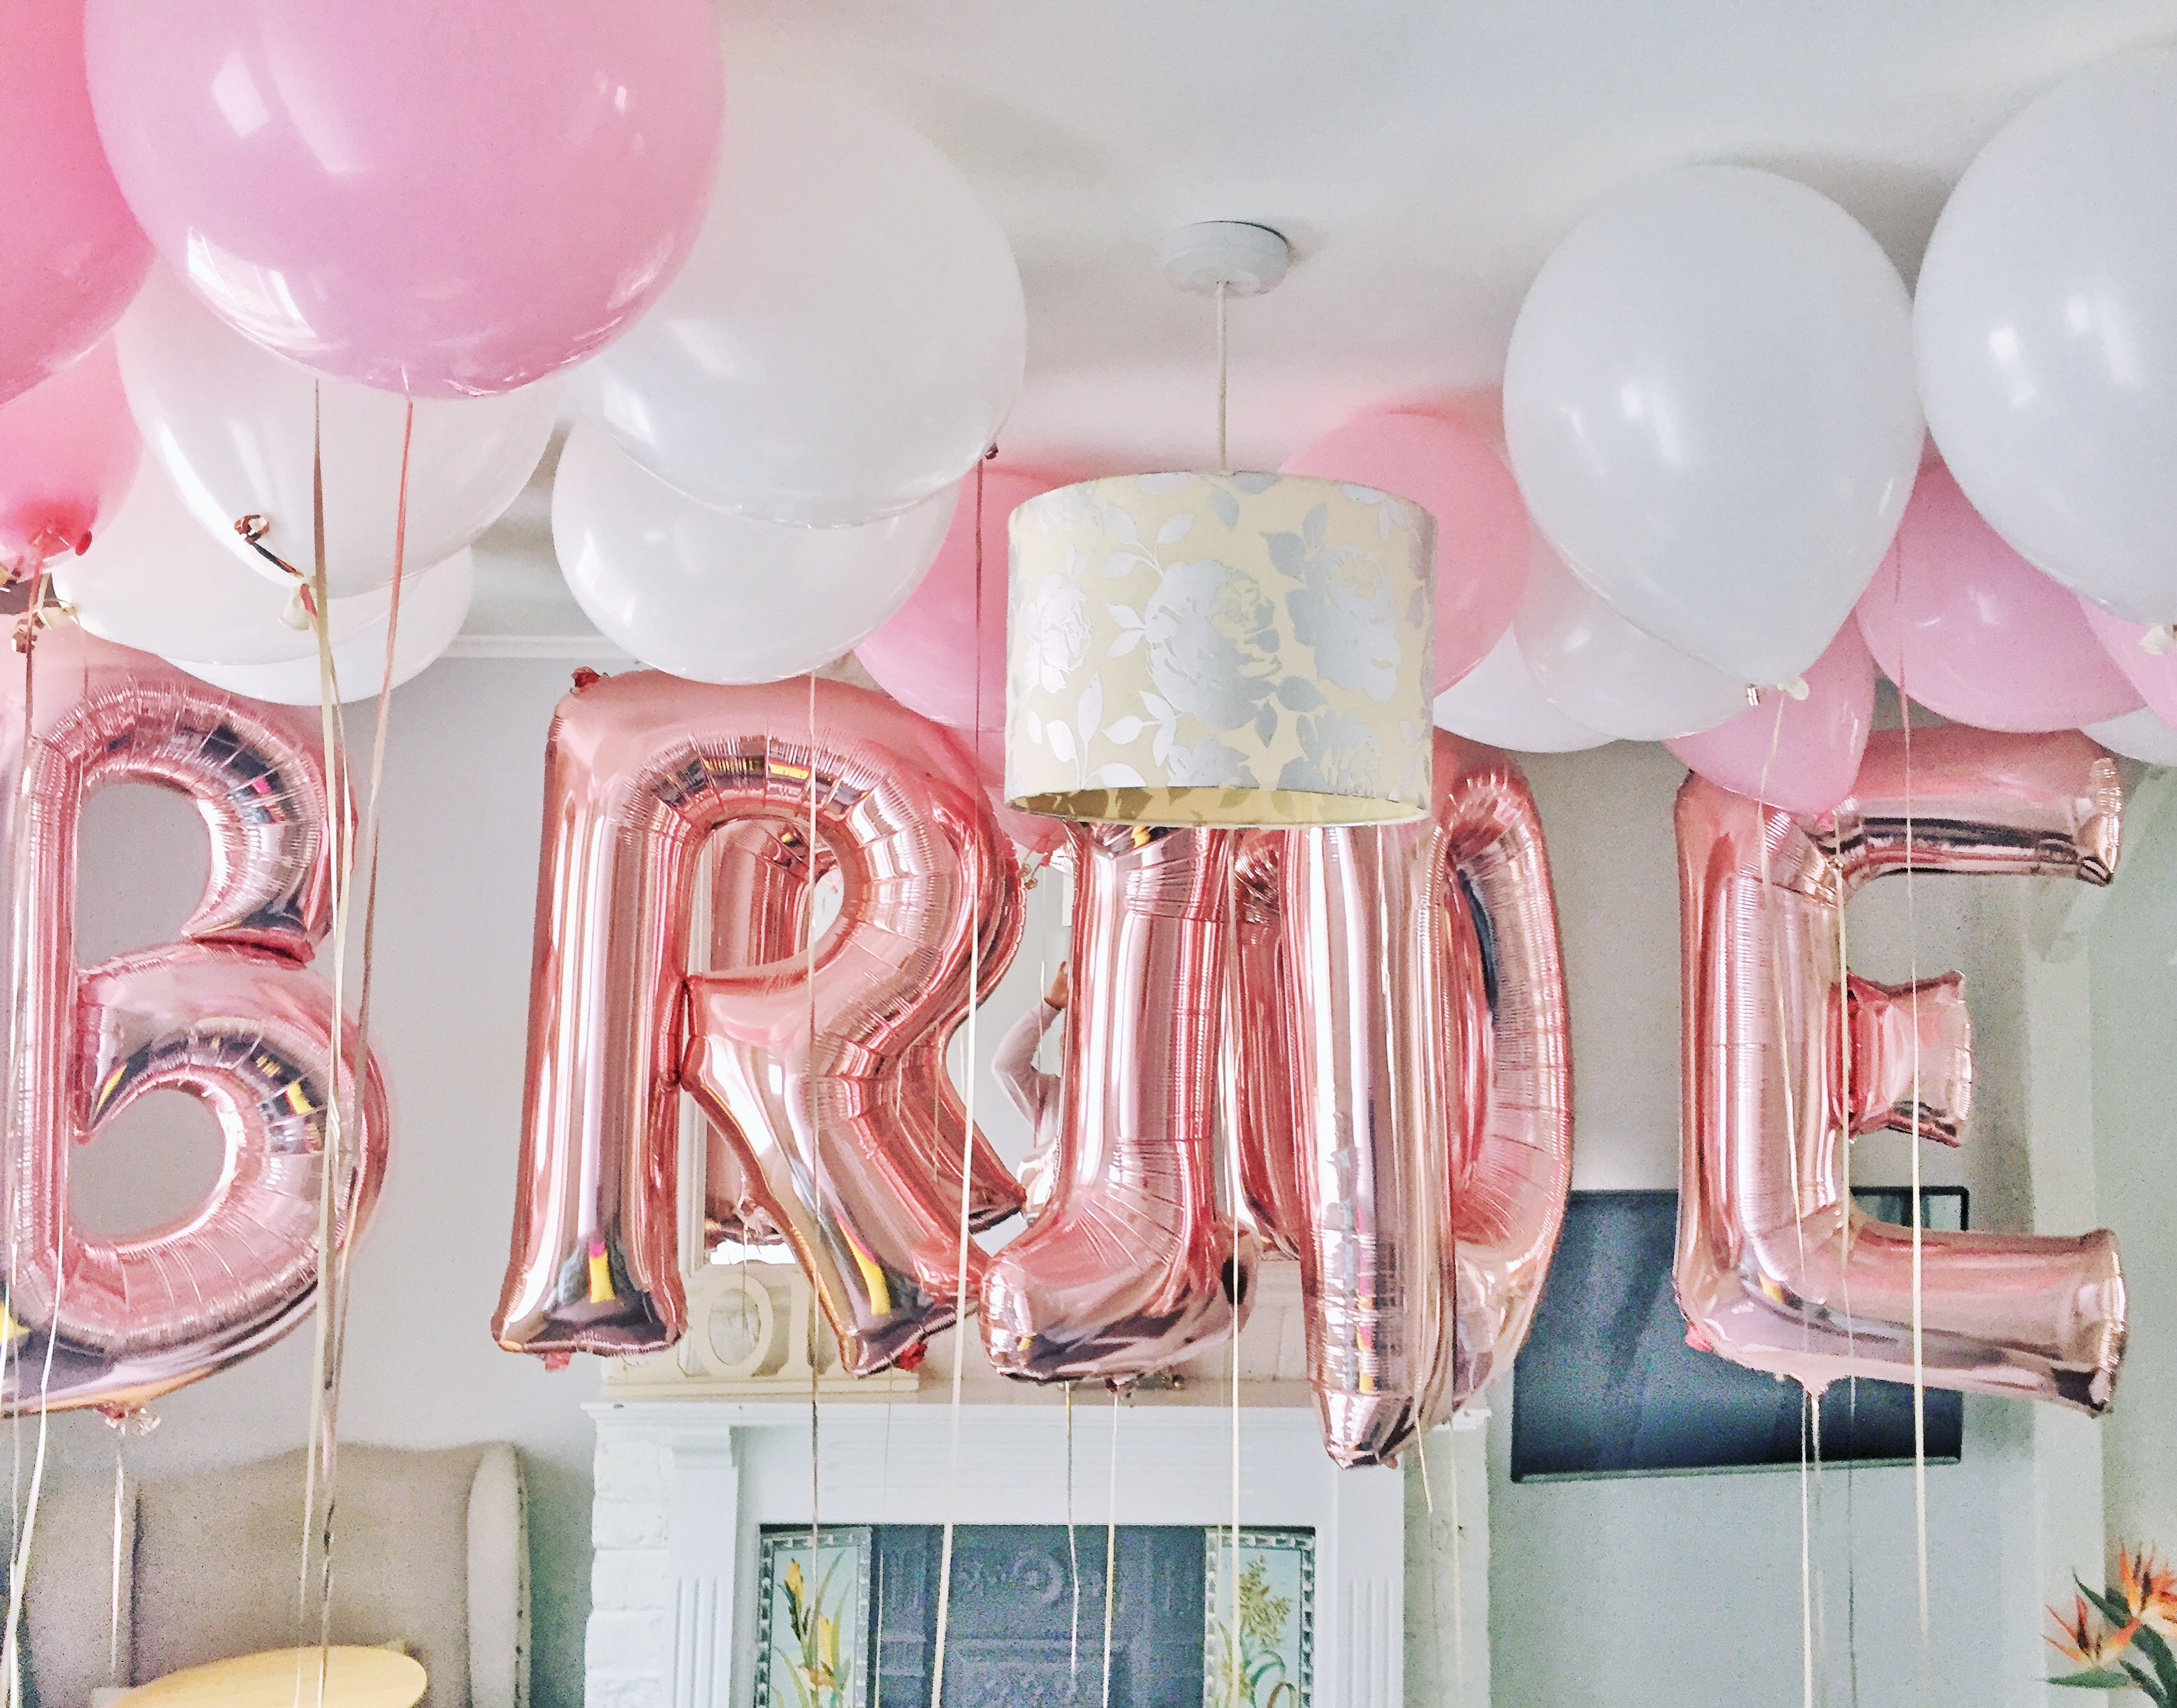 rose-gold-bride-balloons-for-hen-parties.jpg